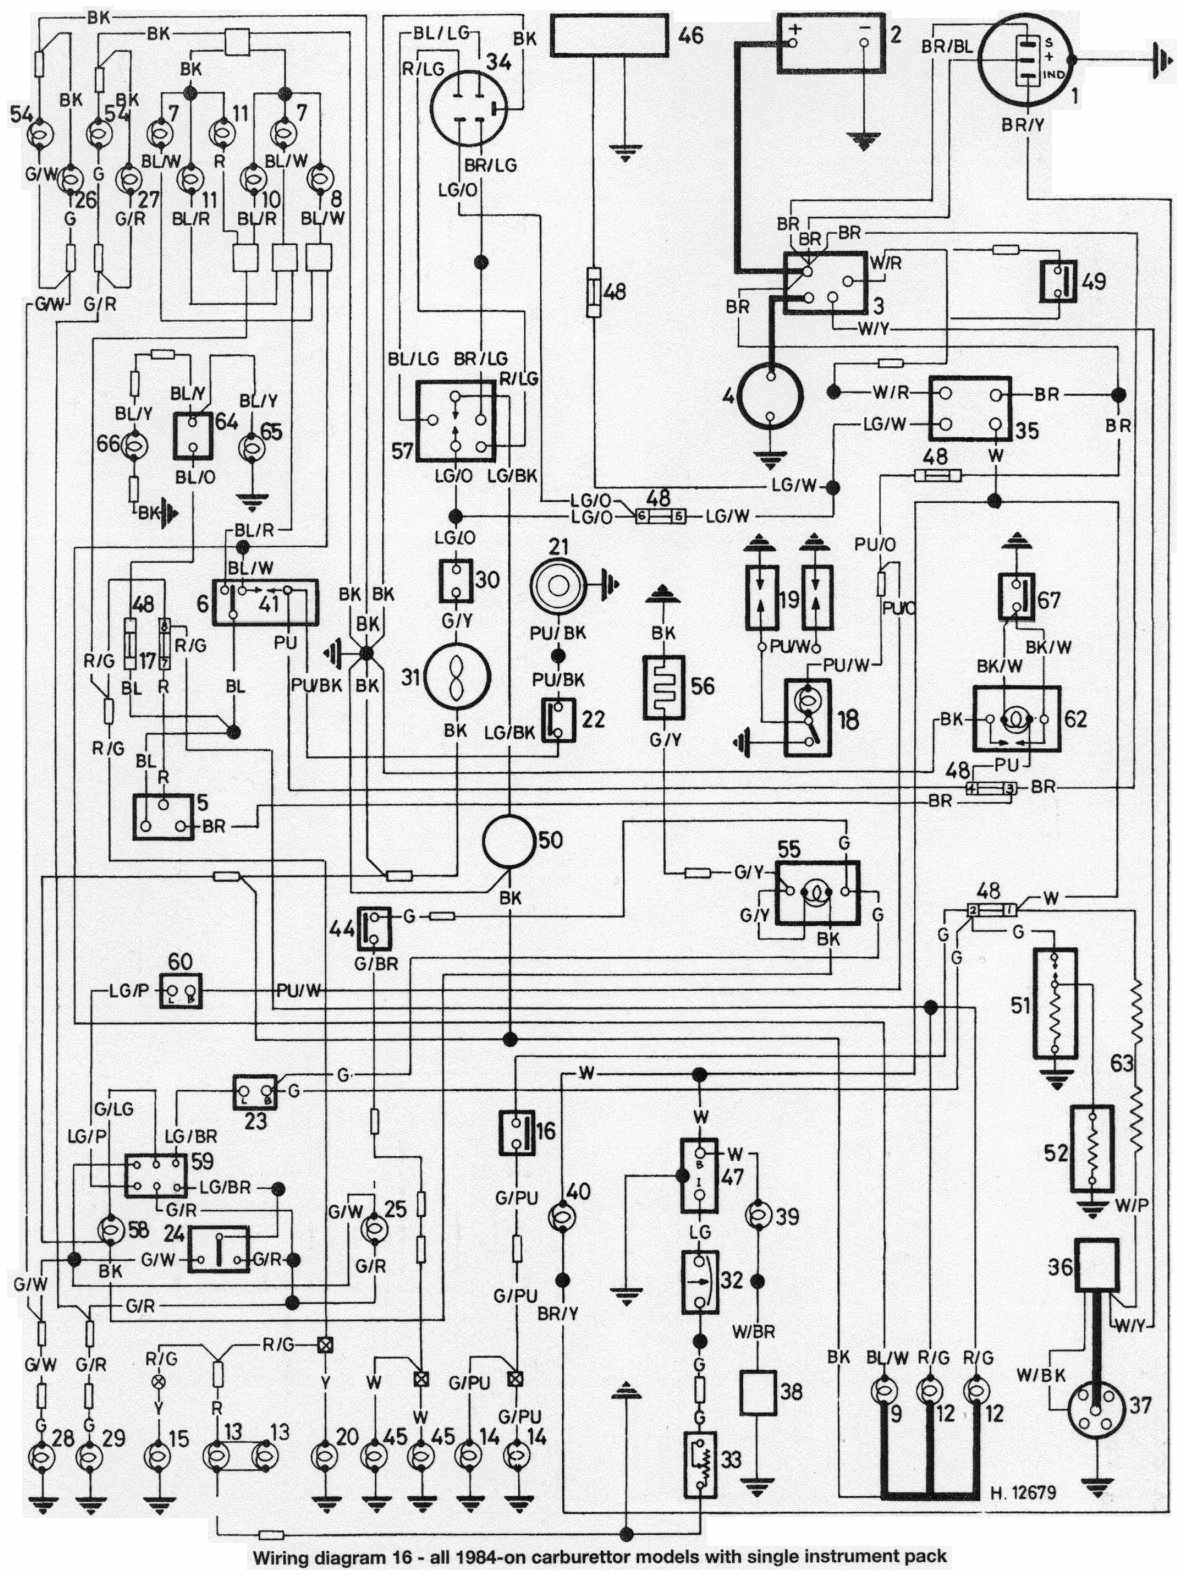 wiring diagram of 1984 onwards all mini series with single instrument pack?t=1508499127 mini car manuals, wiring diagrams pdf & fault codes mini r56 wiring diagram pdf at n-0.co